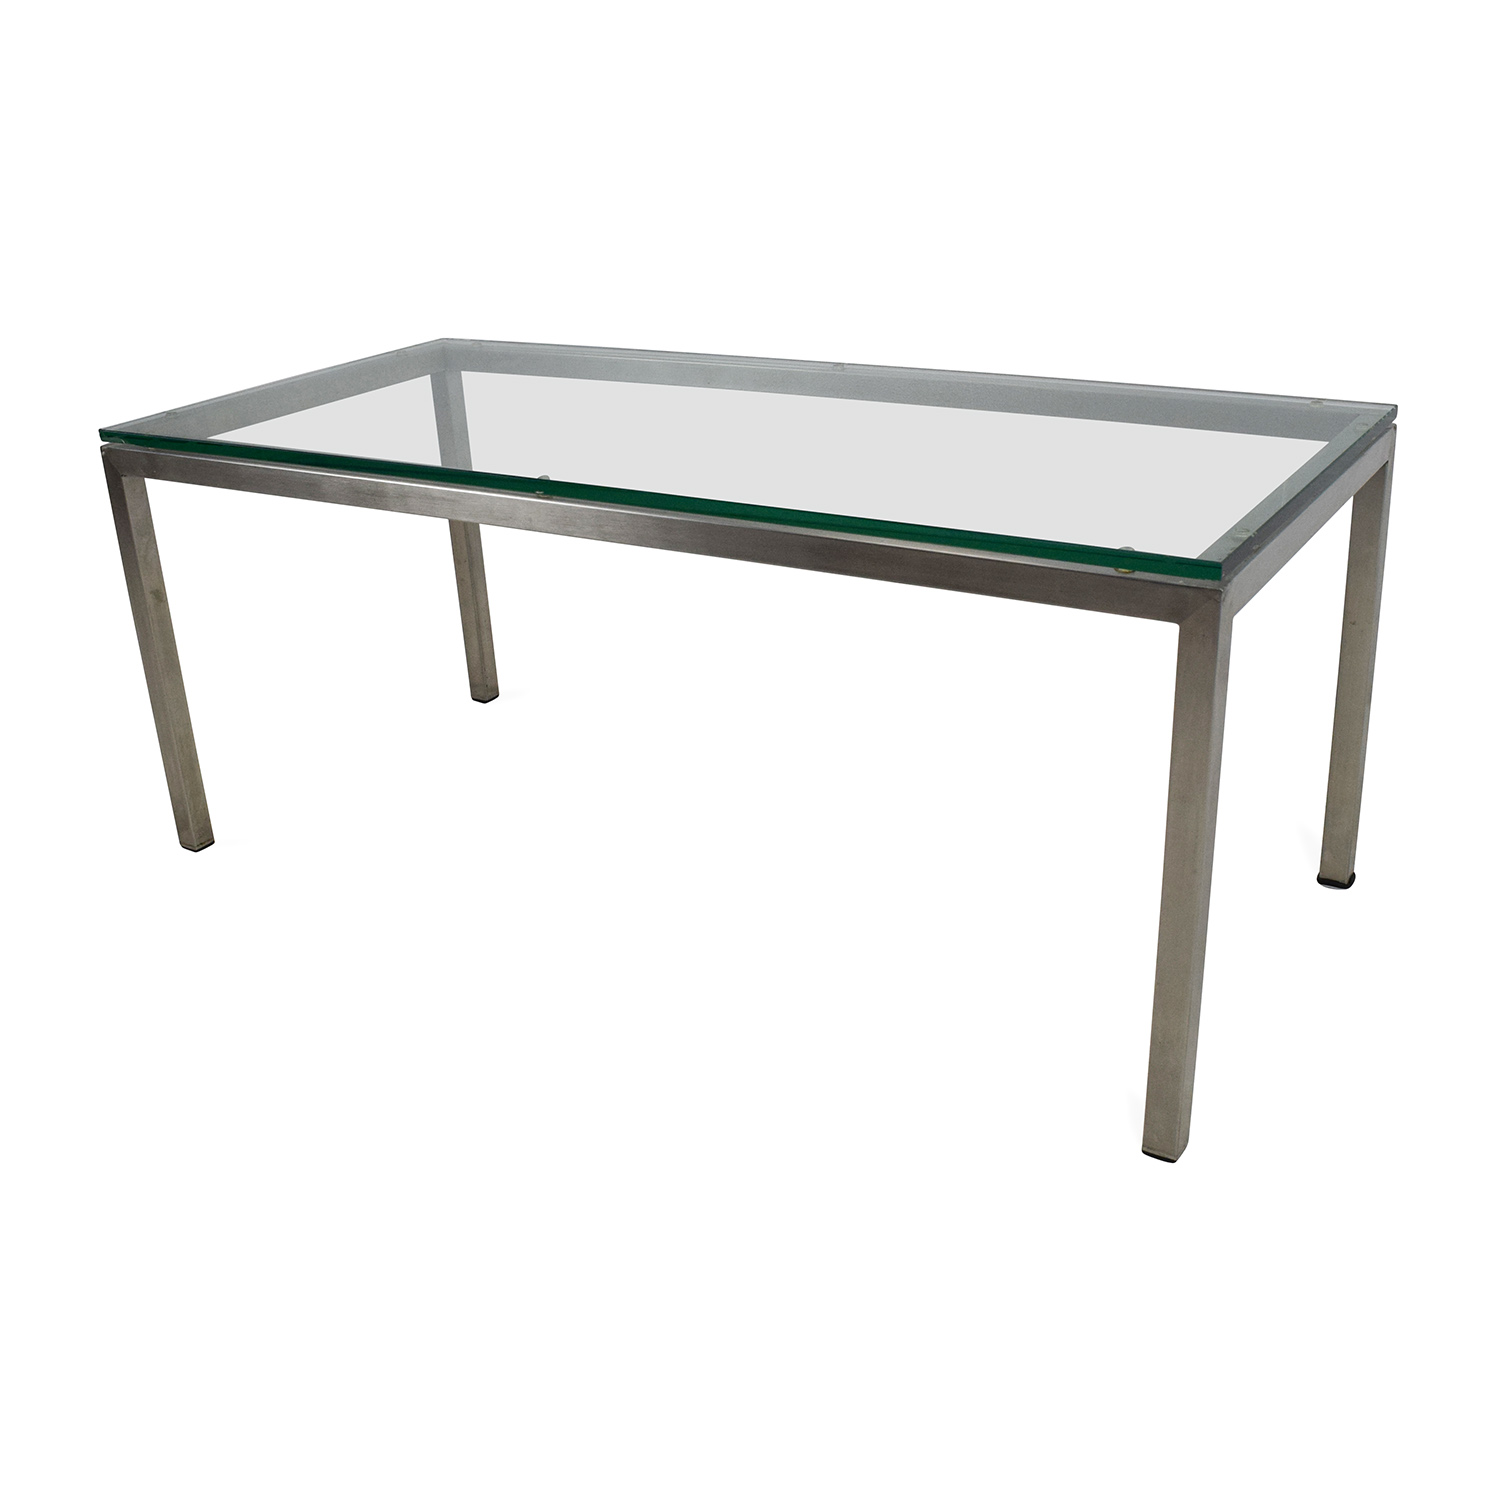 Buy Glass Coffee Table 82 Off Room And Board Room And Board Glass Coffee Table